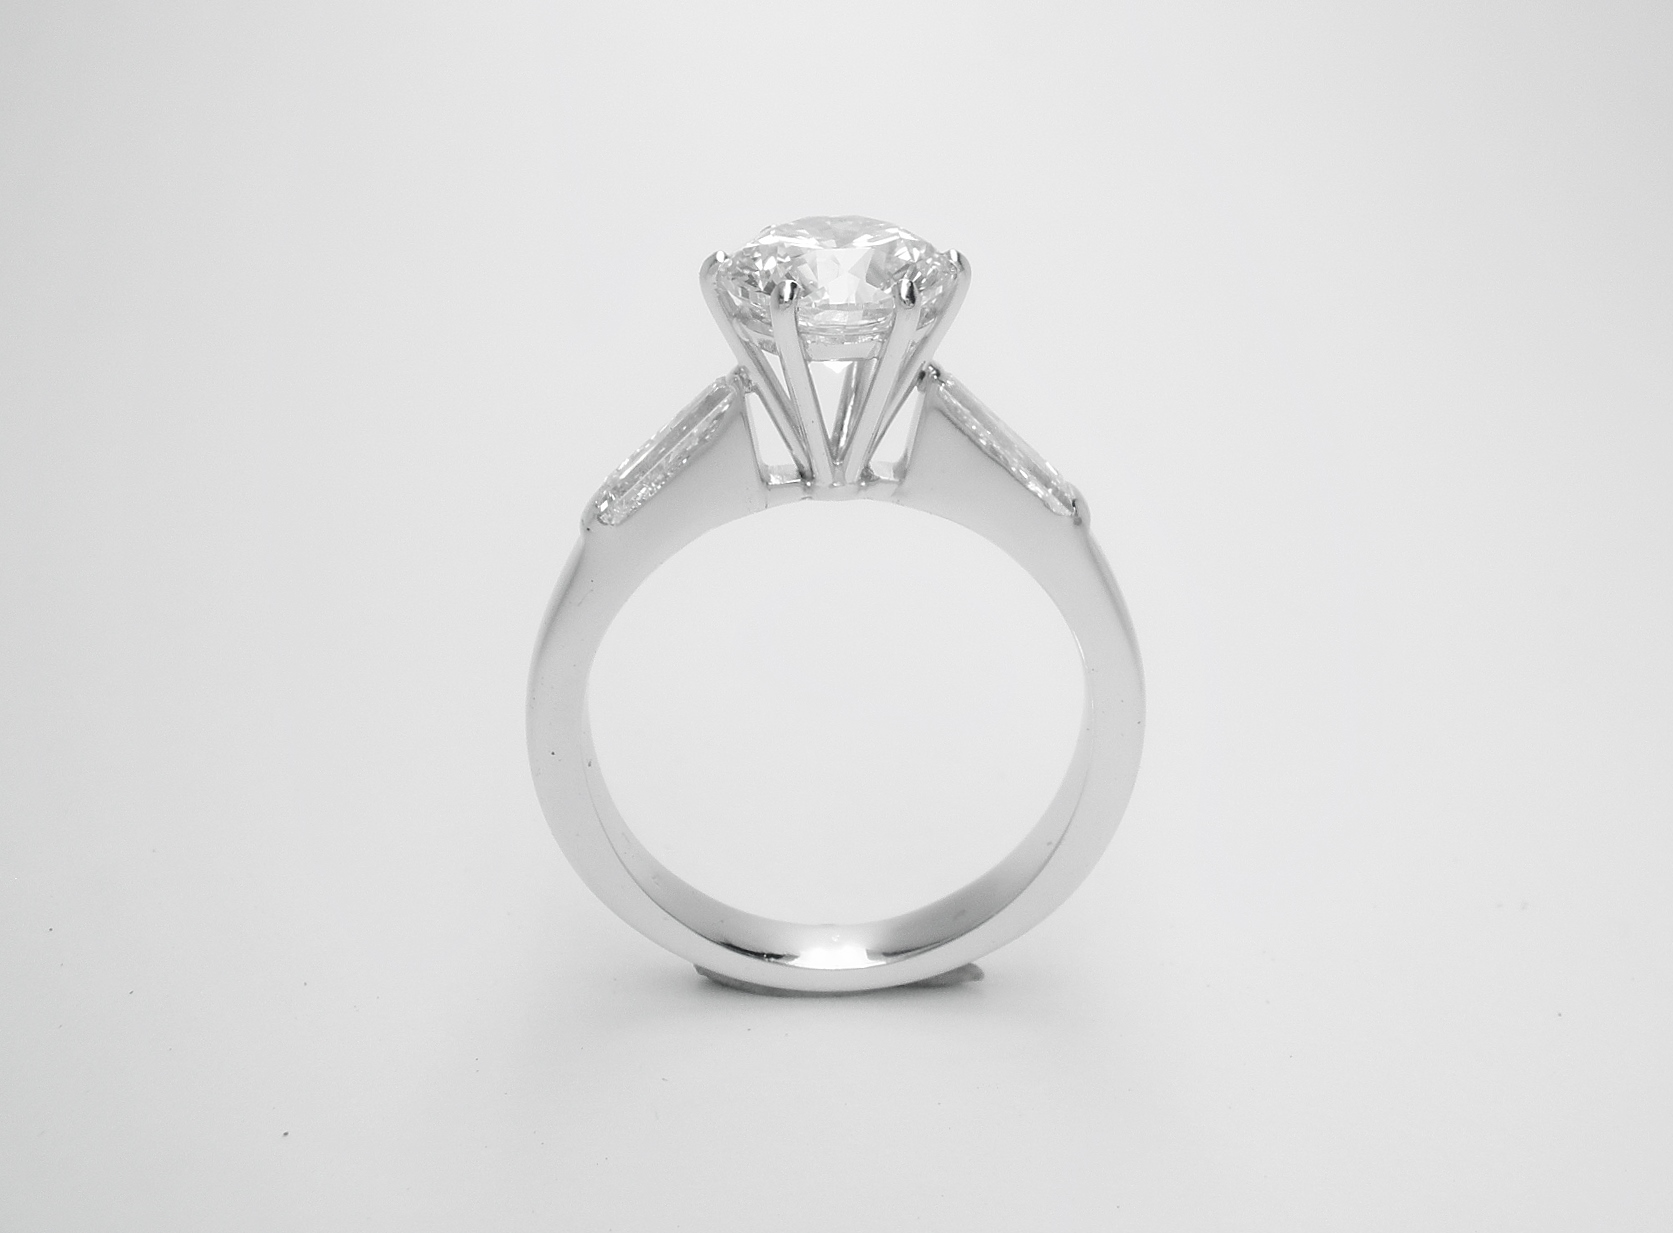 After The 1.50cts. round brilliant cut diamond set in a handmade higher platinum setting inserted successfully between the original tapered baguette shouldered 18ct white gold mount.